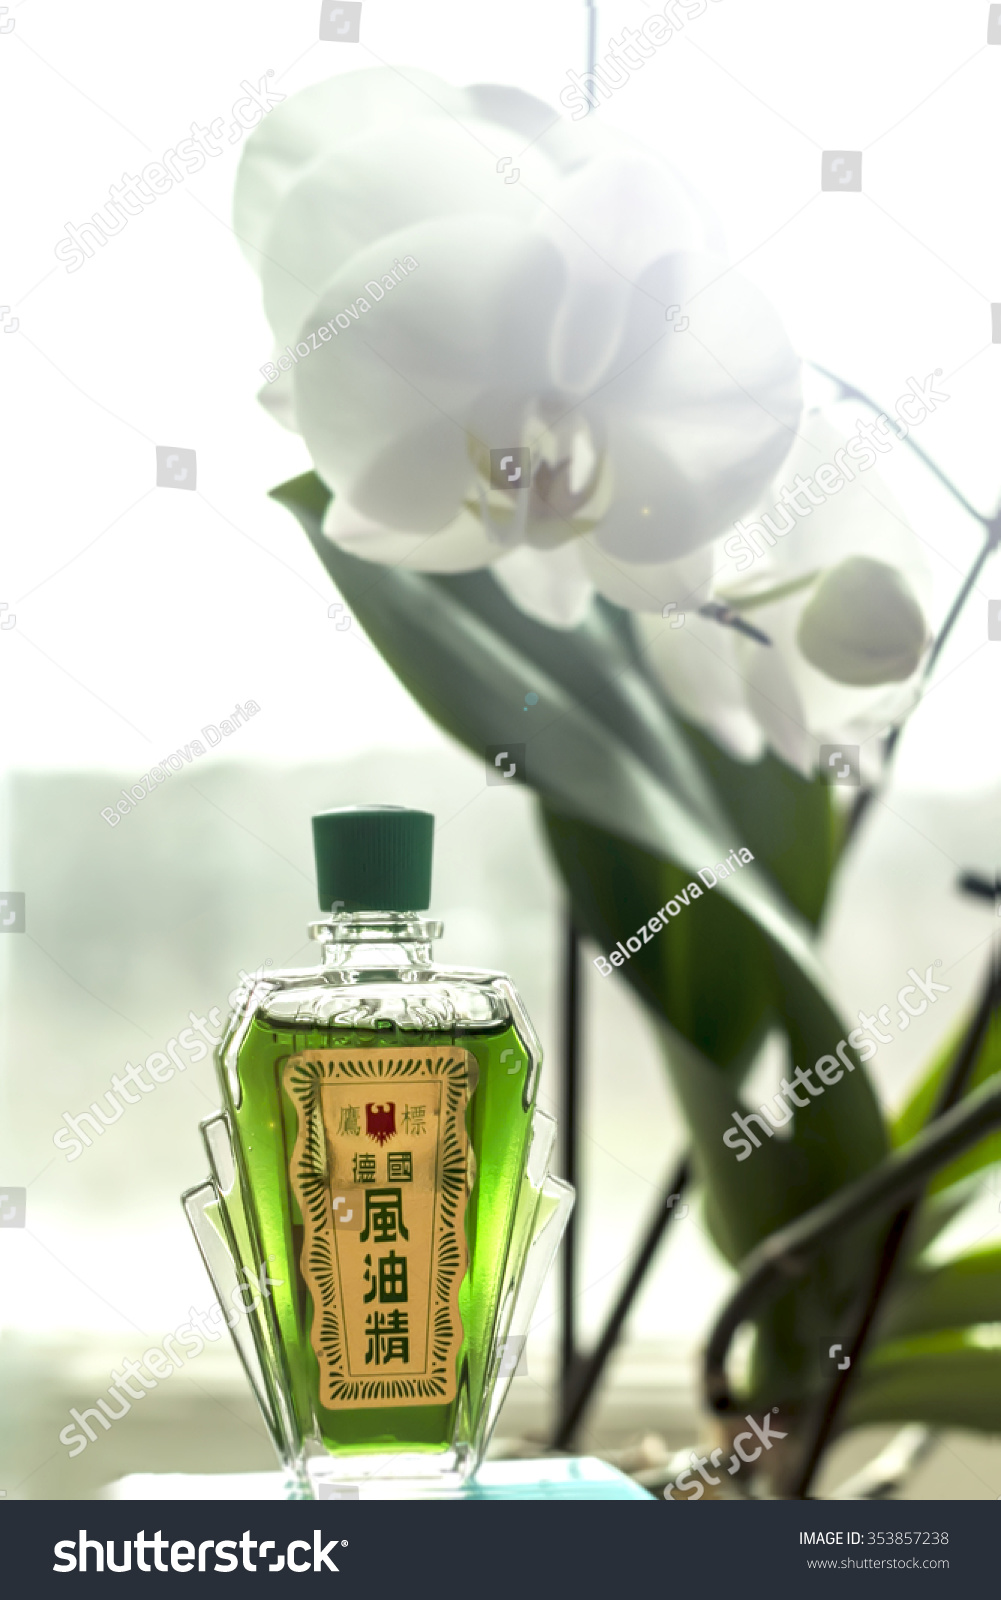 Eagle Brand Medicated Oil Singapoore Thailand Stock Photo Edit Now